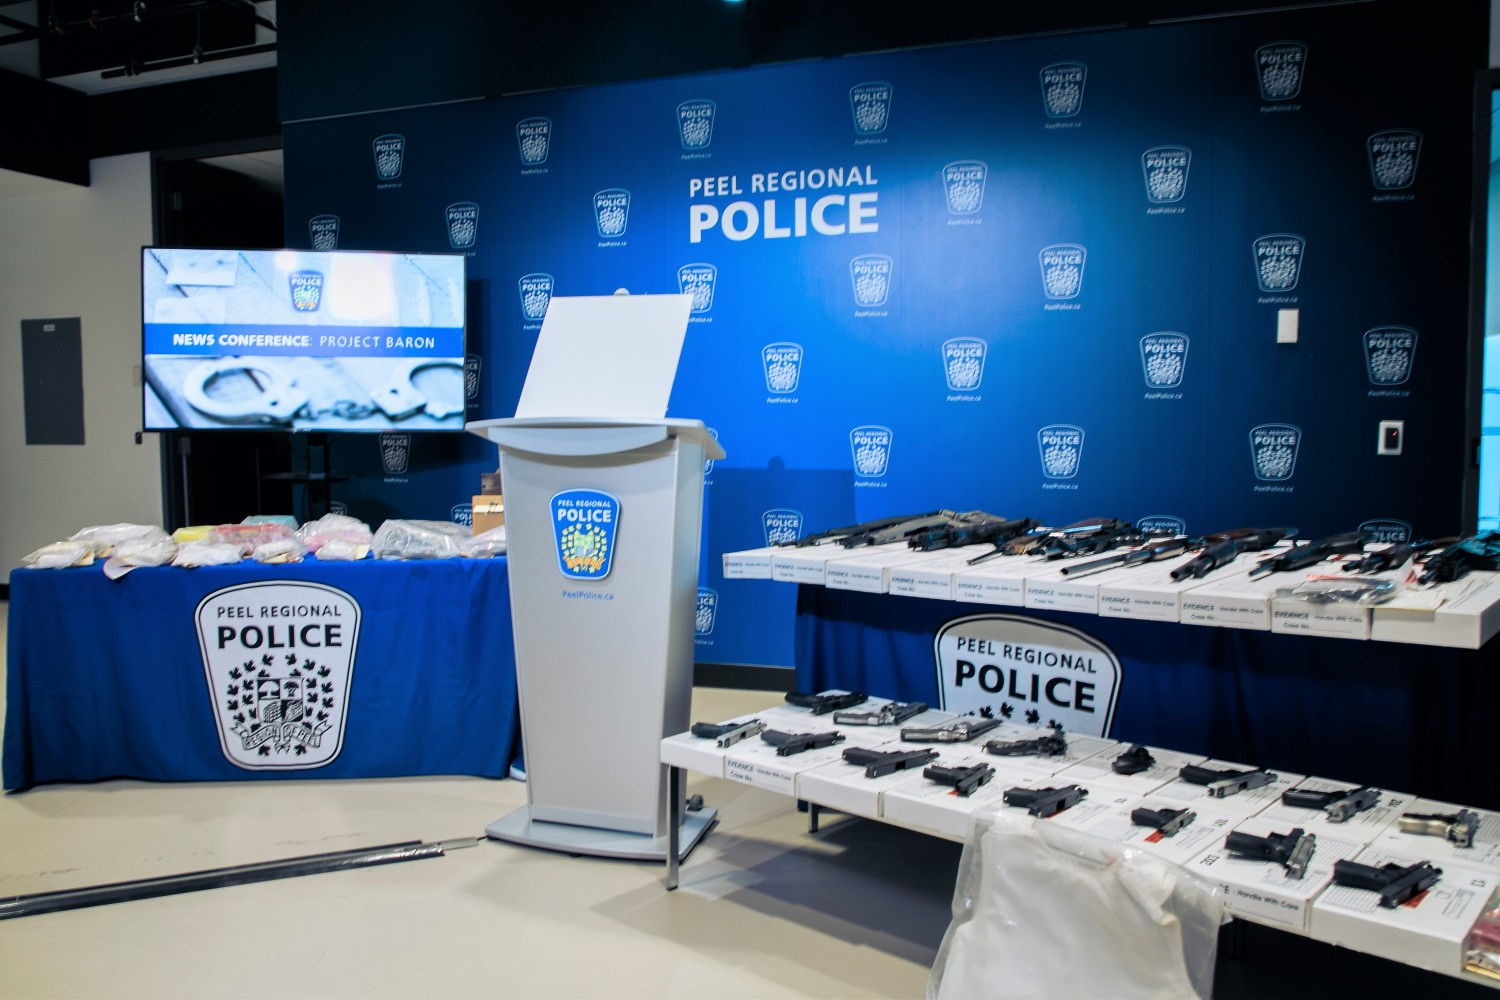 Historic seizure of guns and drugs highlights continuing criminal violence in Peel